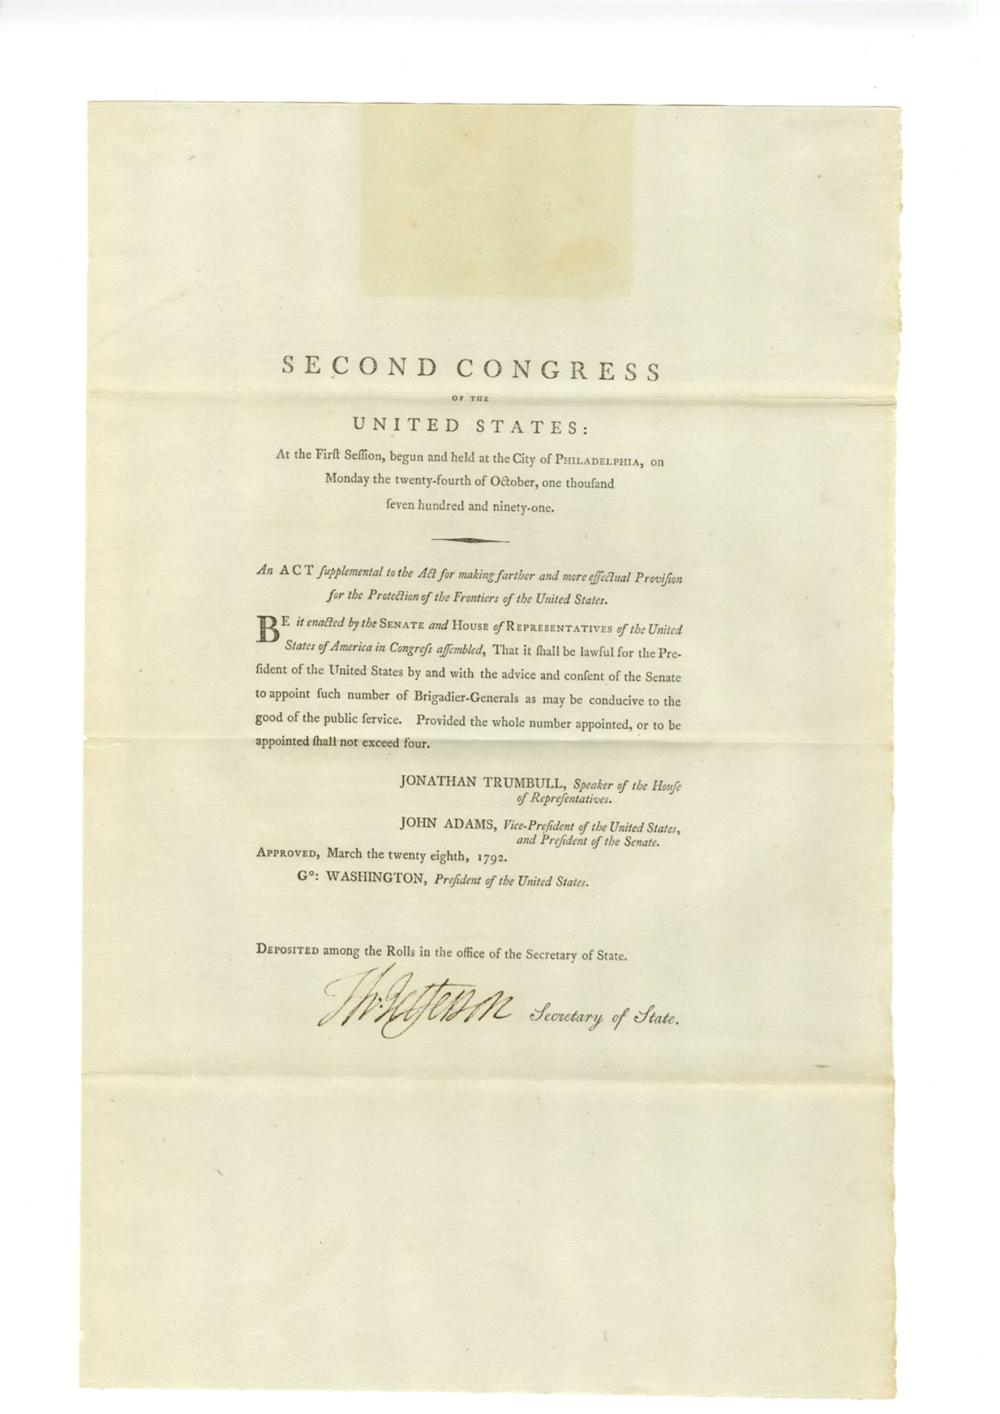 Significant Thomas Jefferson Document Signed, as Secretary of State, on printed Act of Second Congress, First Session